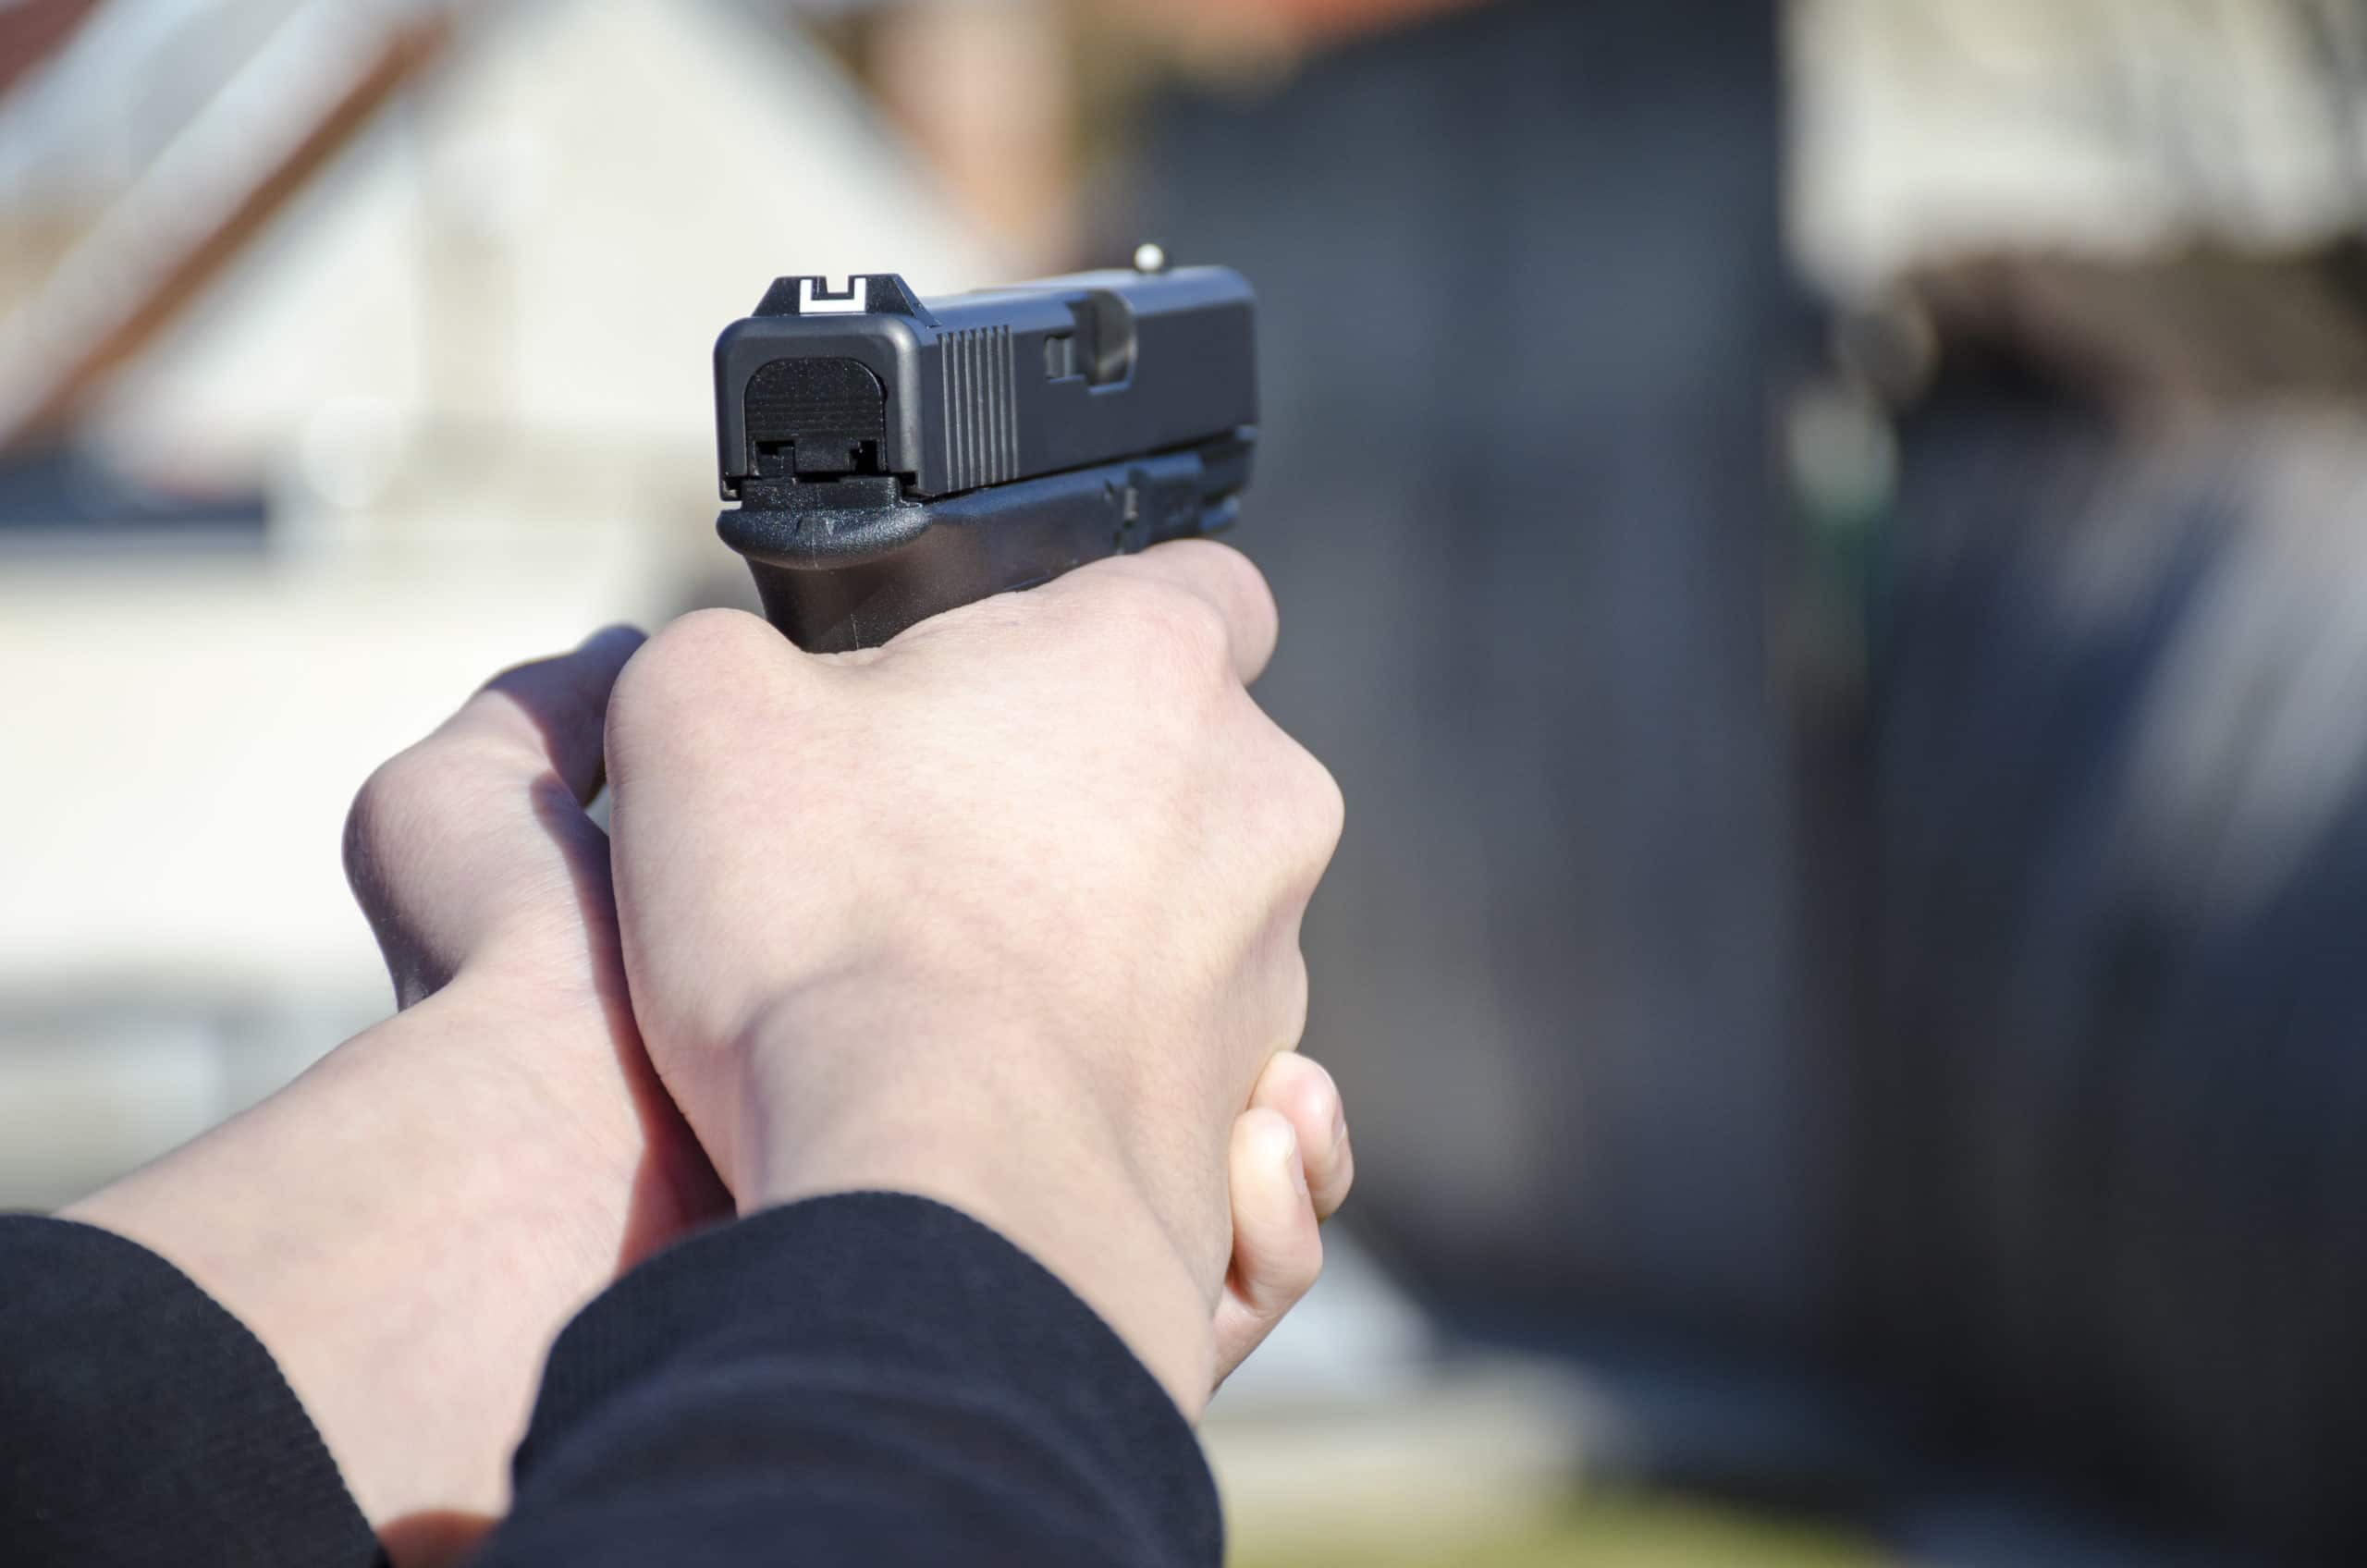 A gun in the hands of a man ready for a shot with blurred backfround.